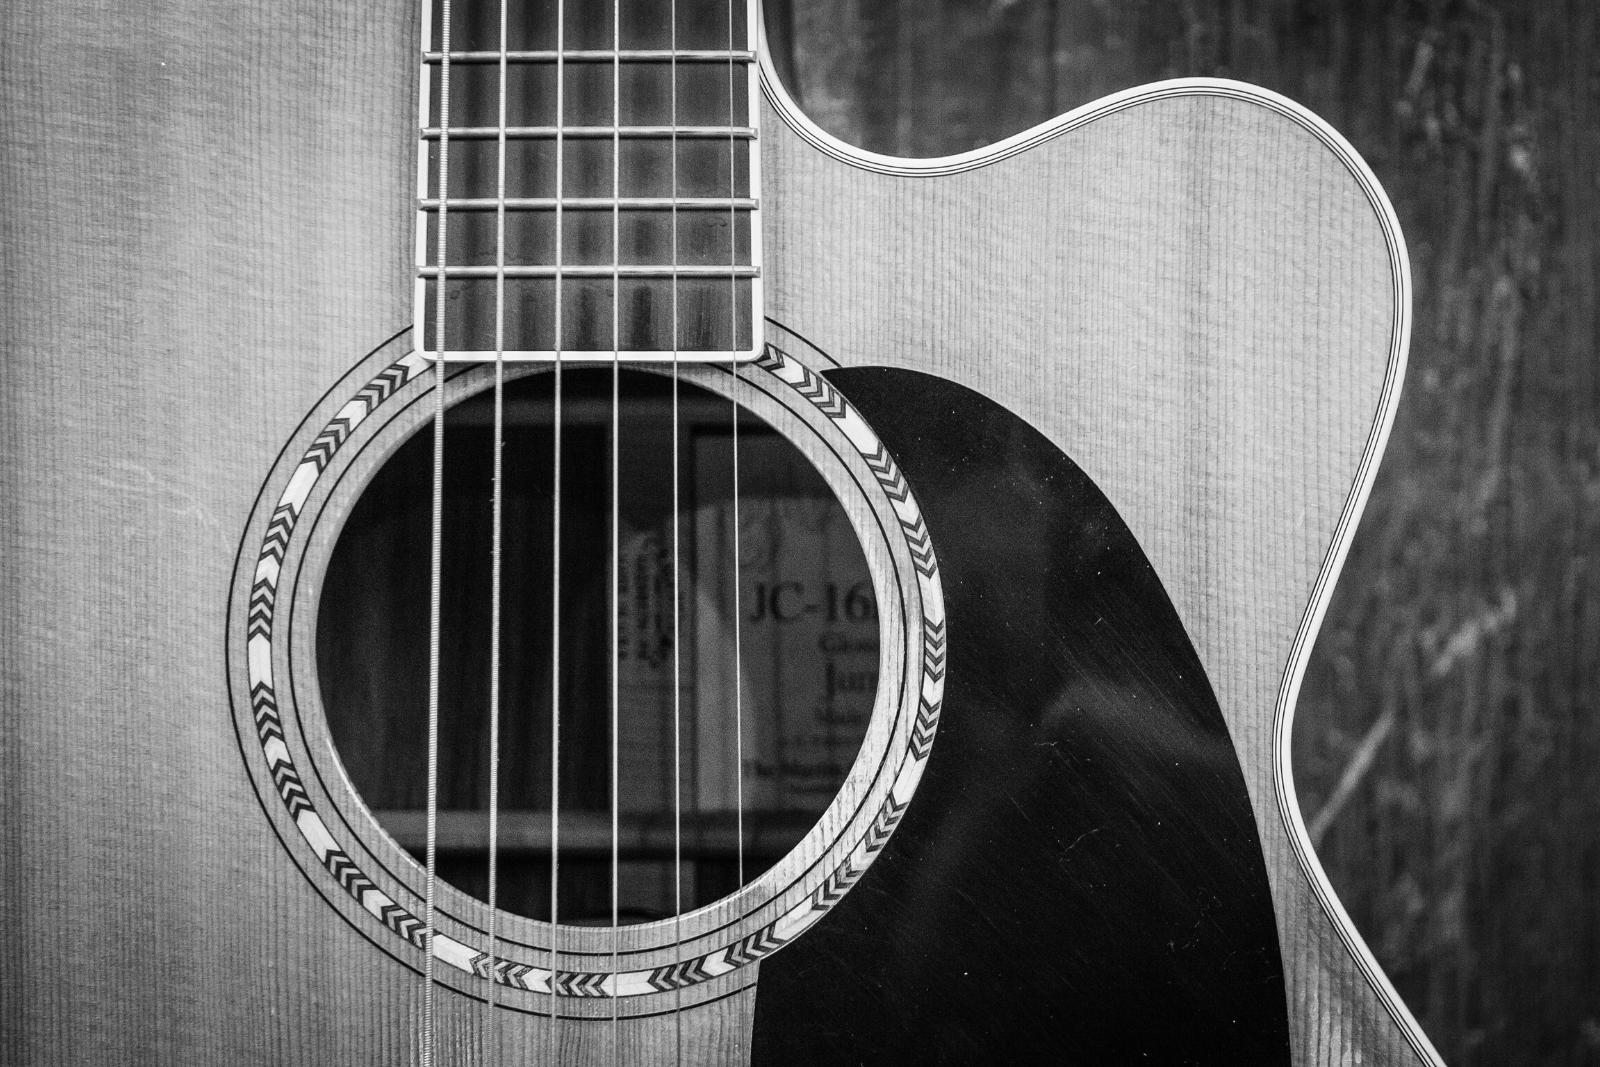 Guitar | How To Properly Take Care Of A Guitar